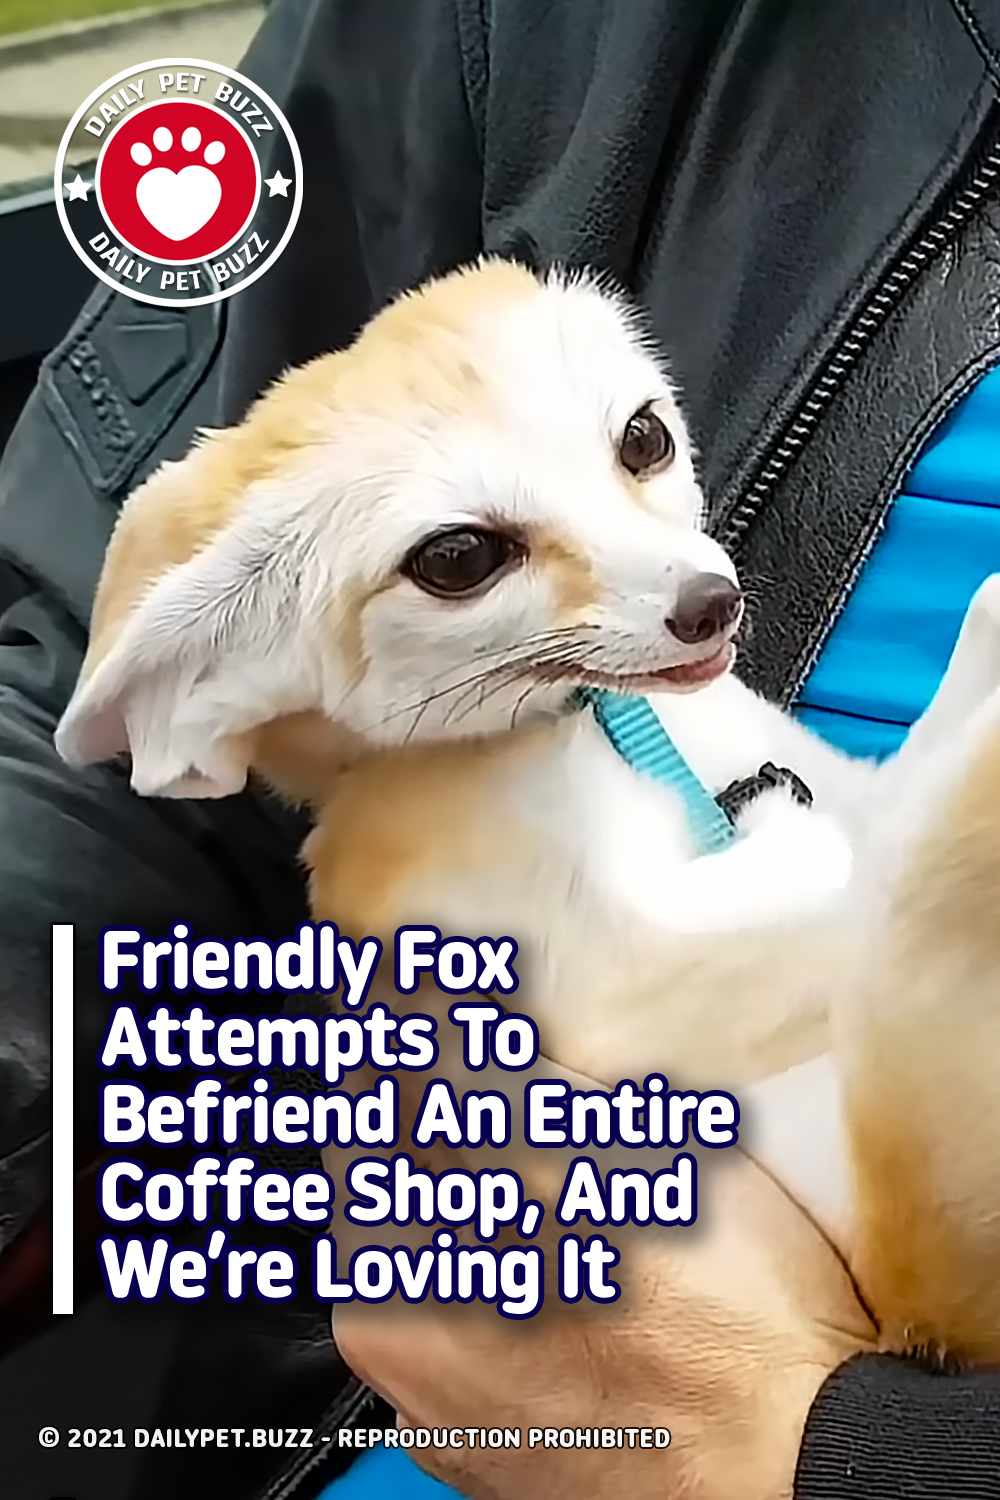 Friendly Fox Attempts To Befriend An Entire Coffee Shop, And We're Loving It